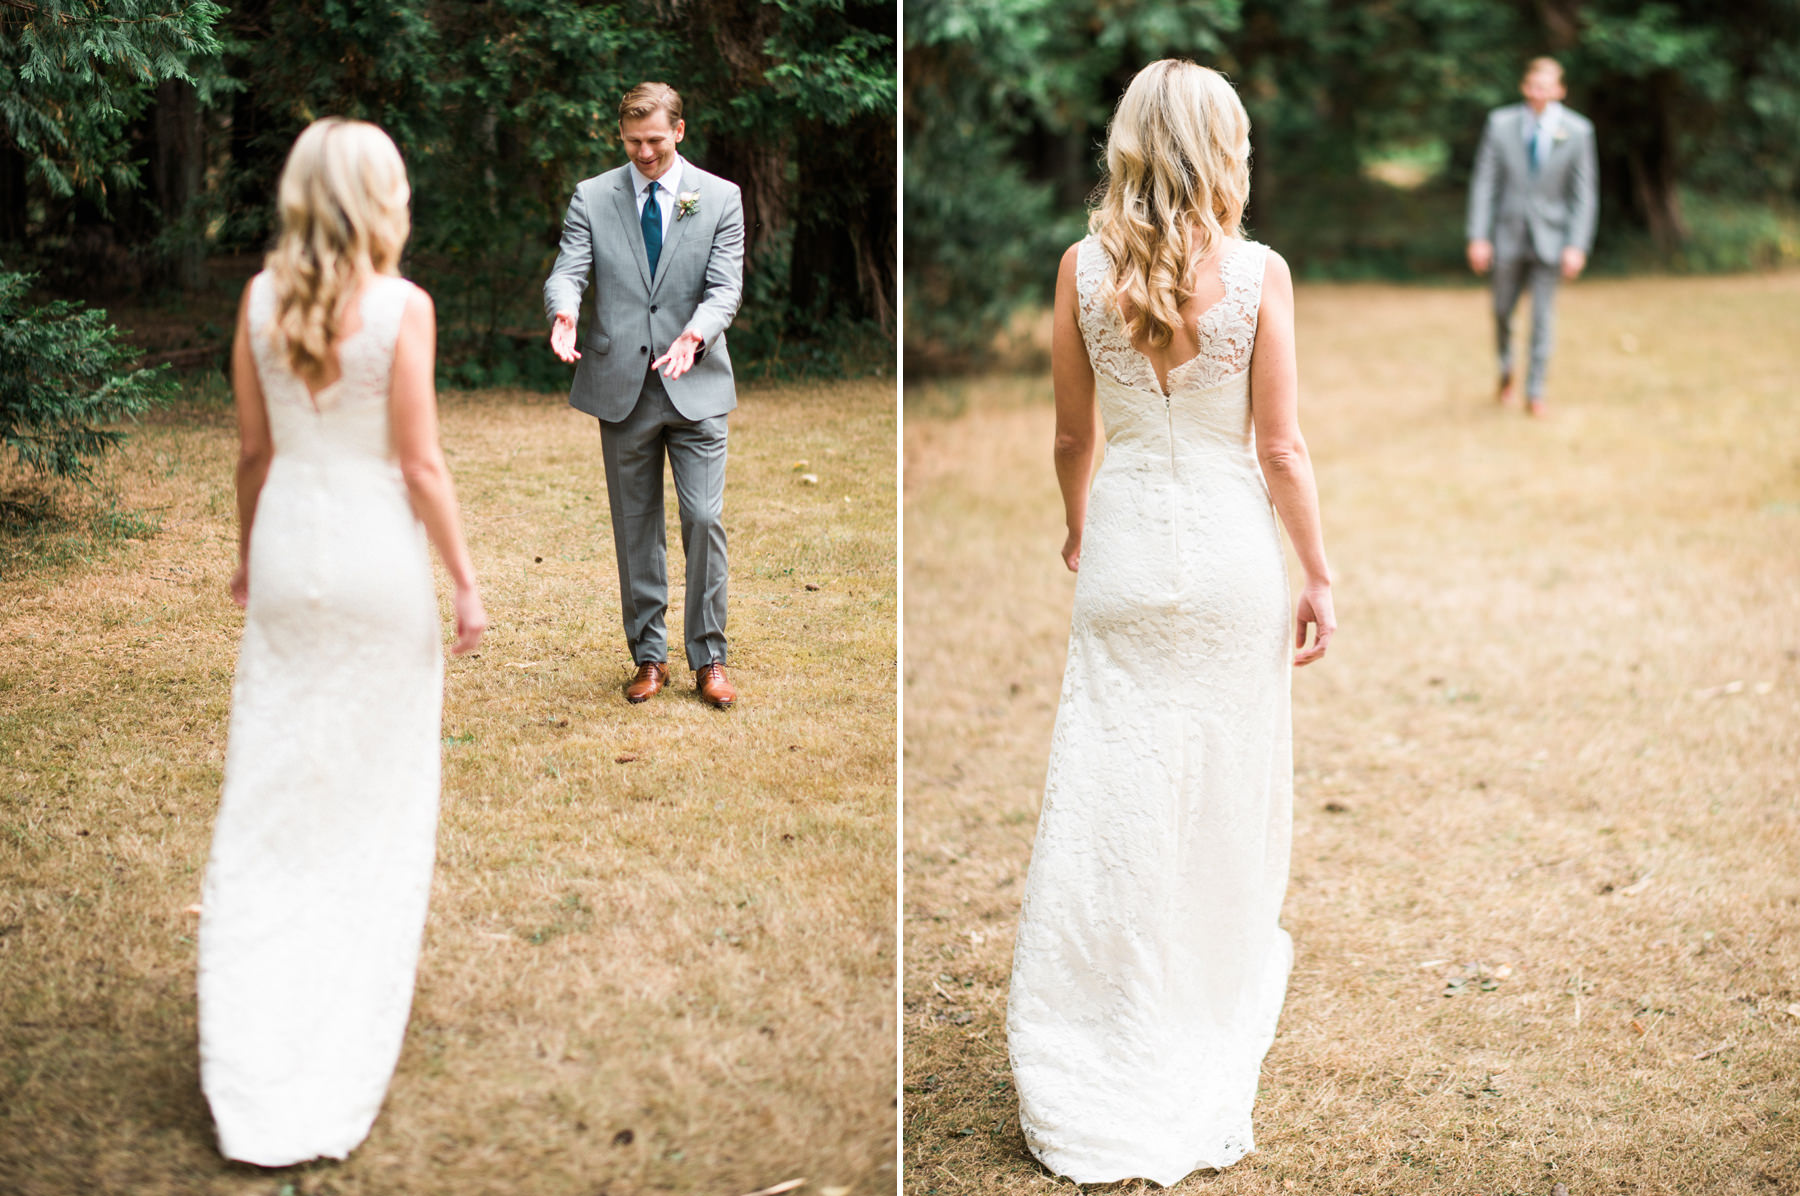 173-groom-in-a-light-grey-two-button-suit-on-portra-400.jpg